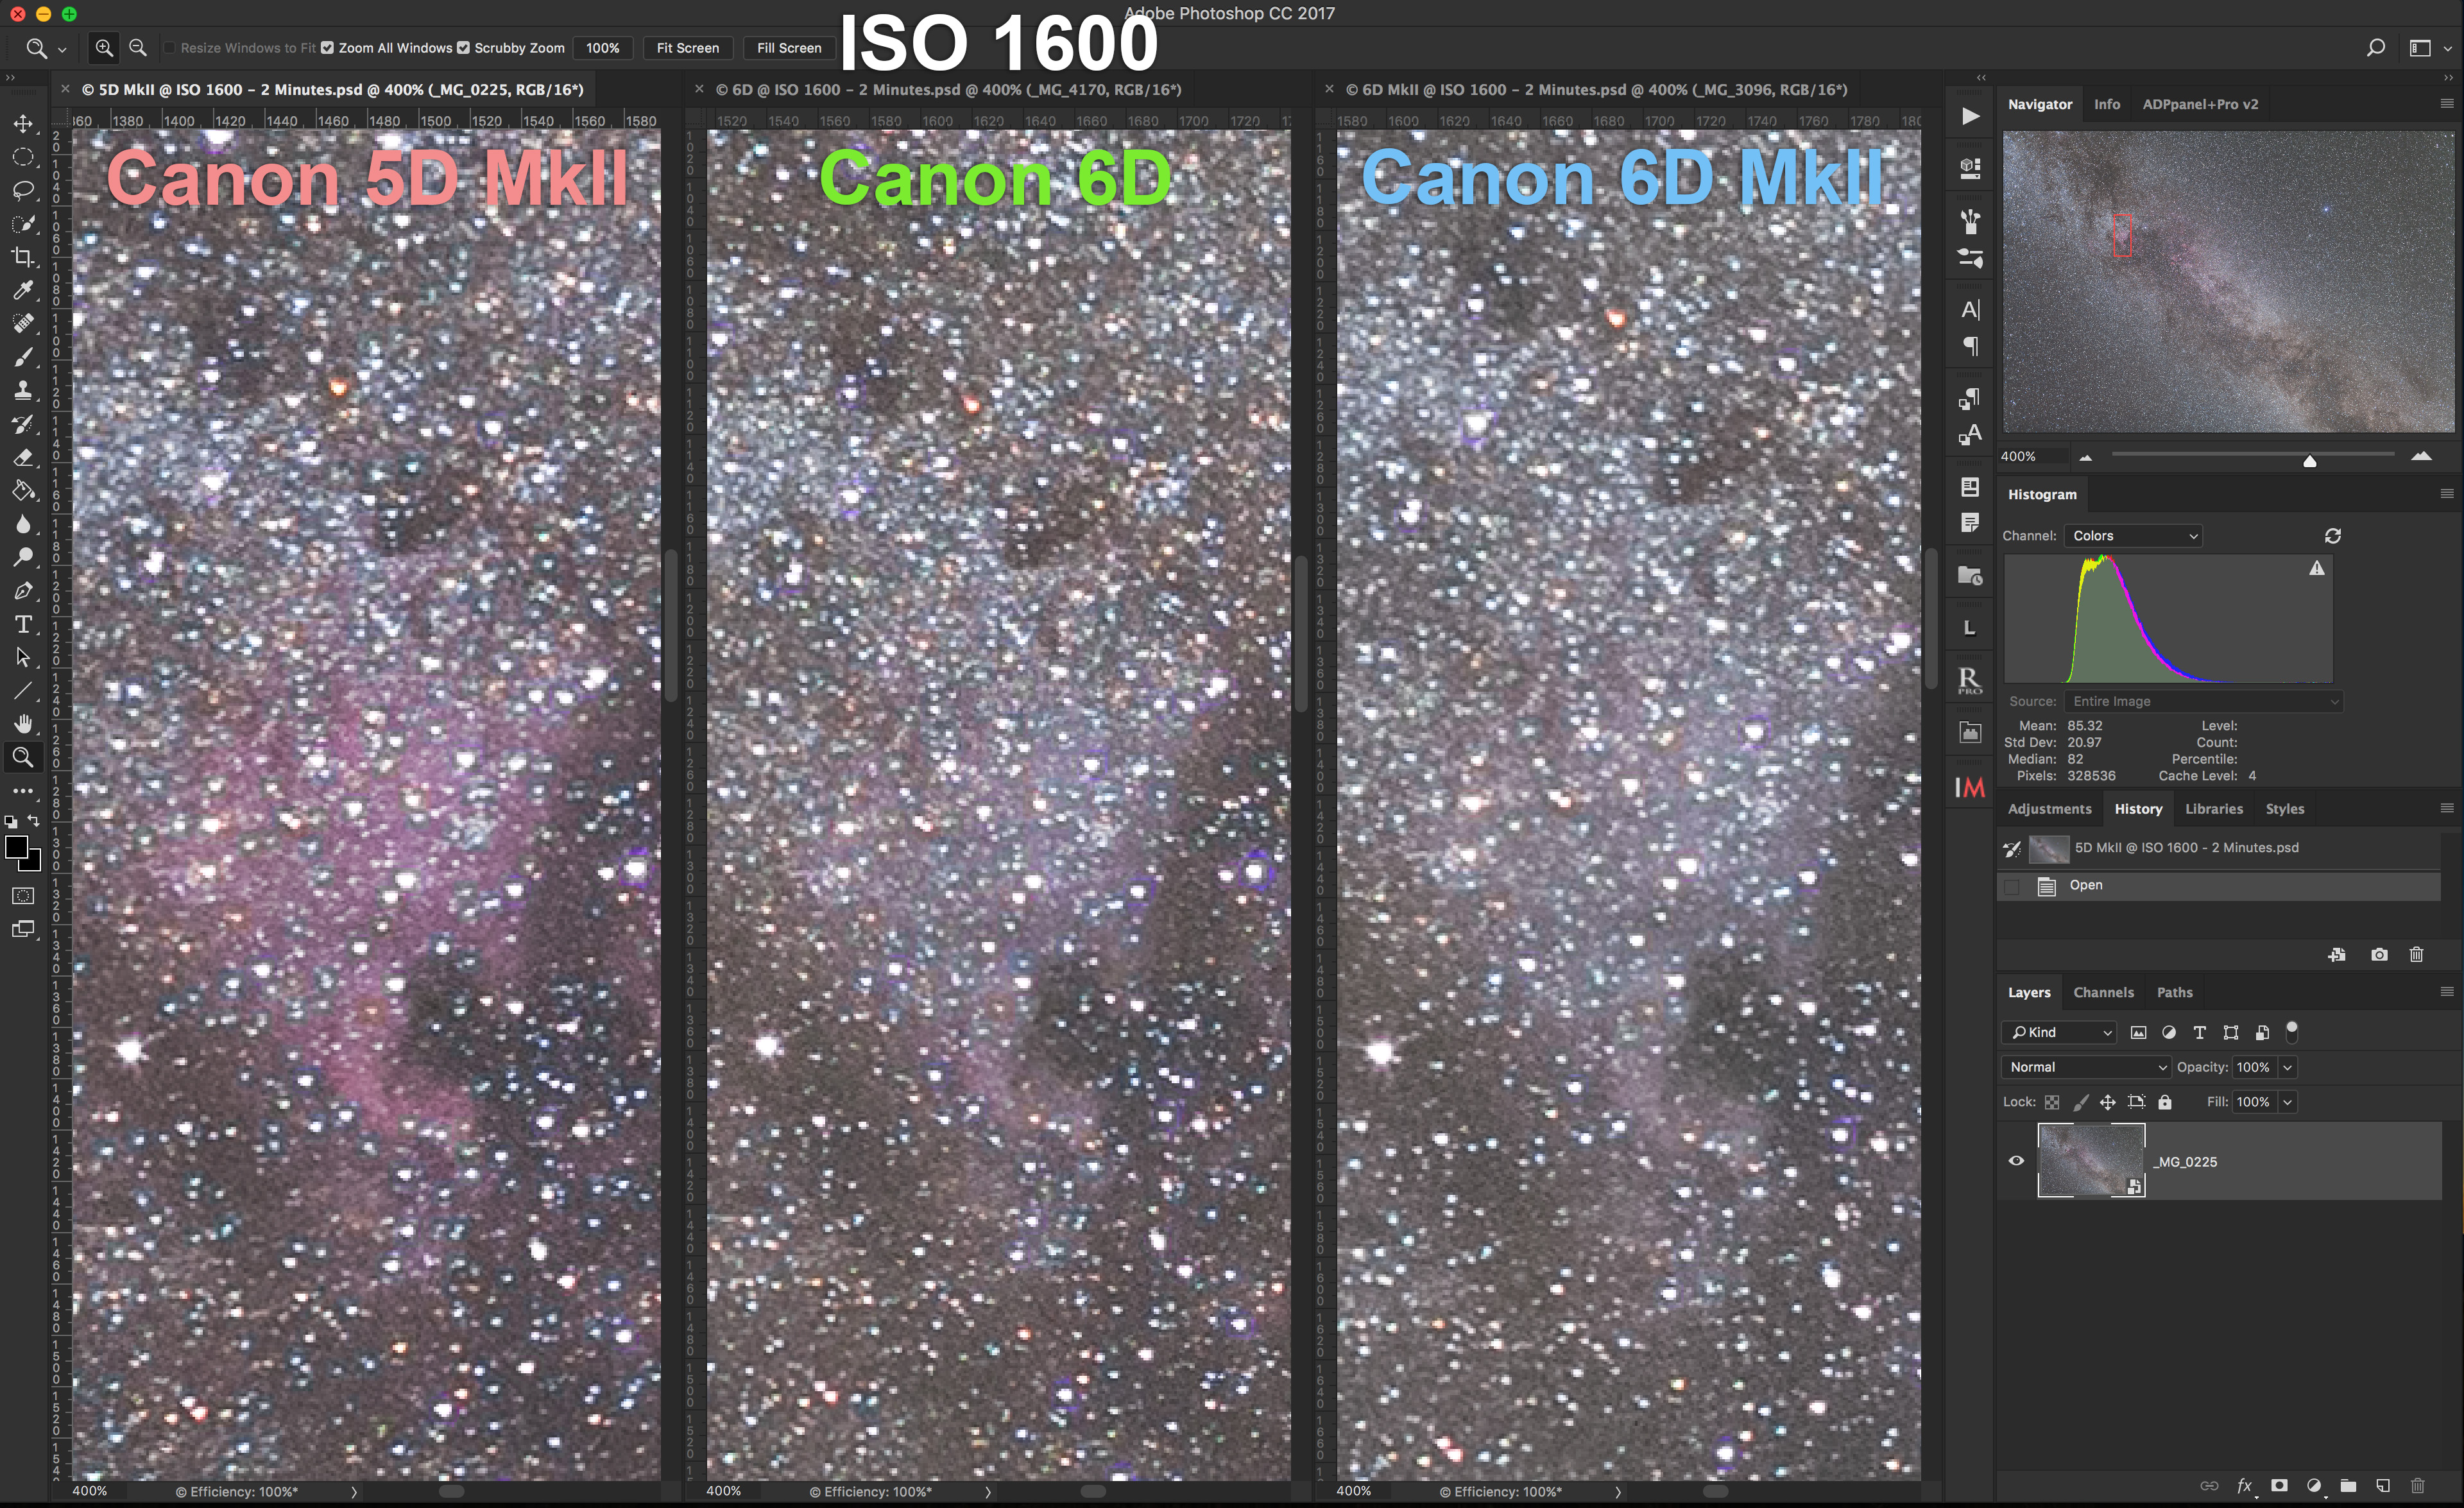 3 Canons at ISO 1600